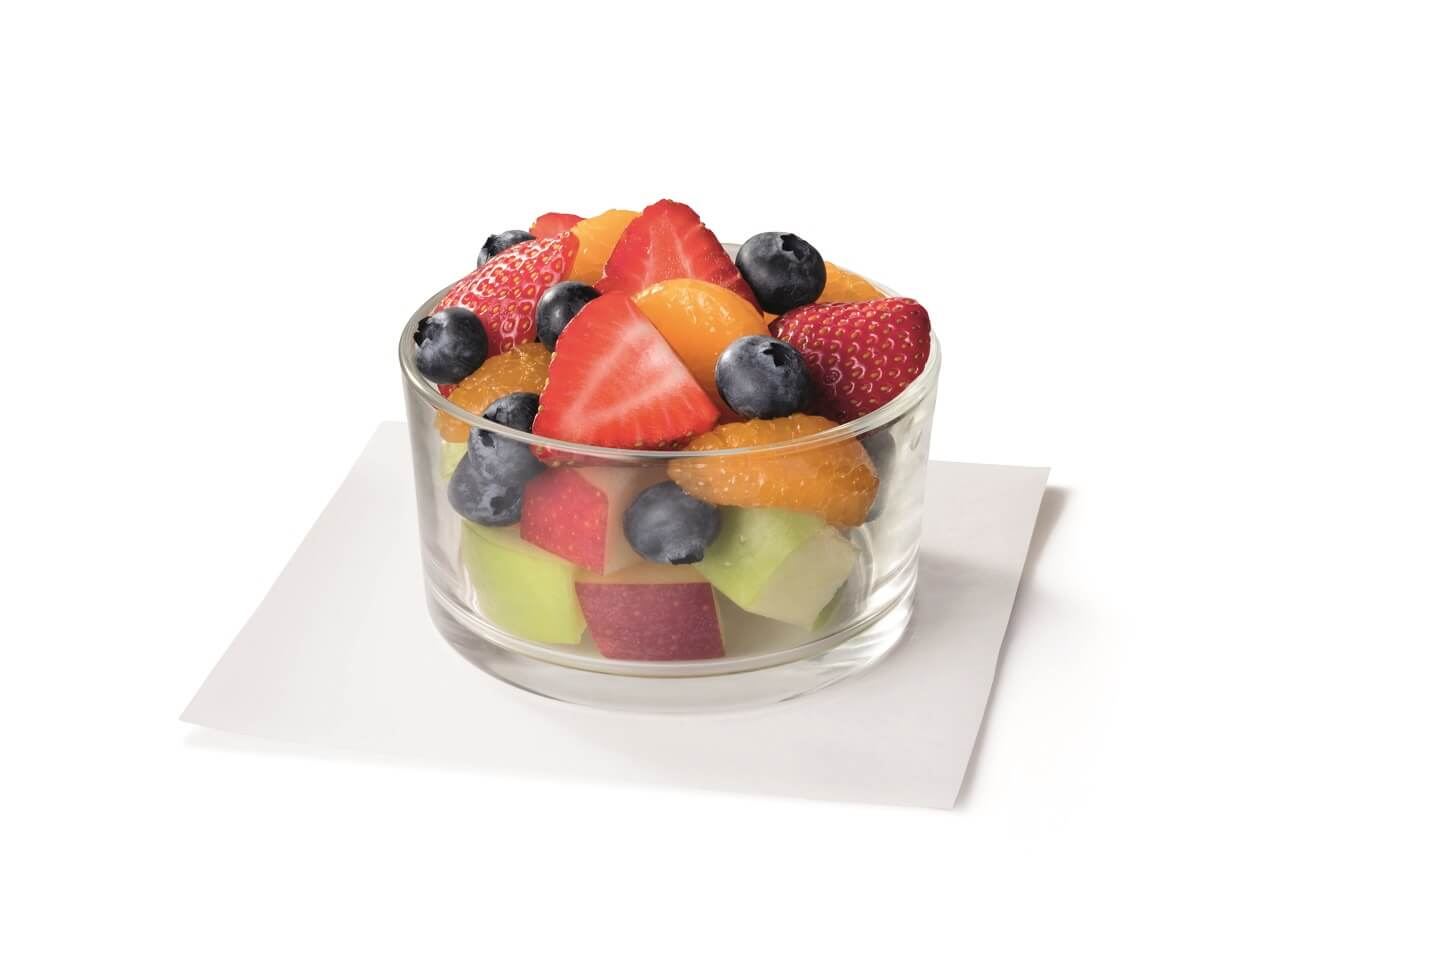 medium-sized fruit cup